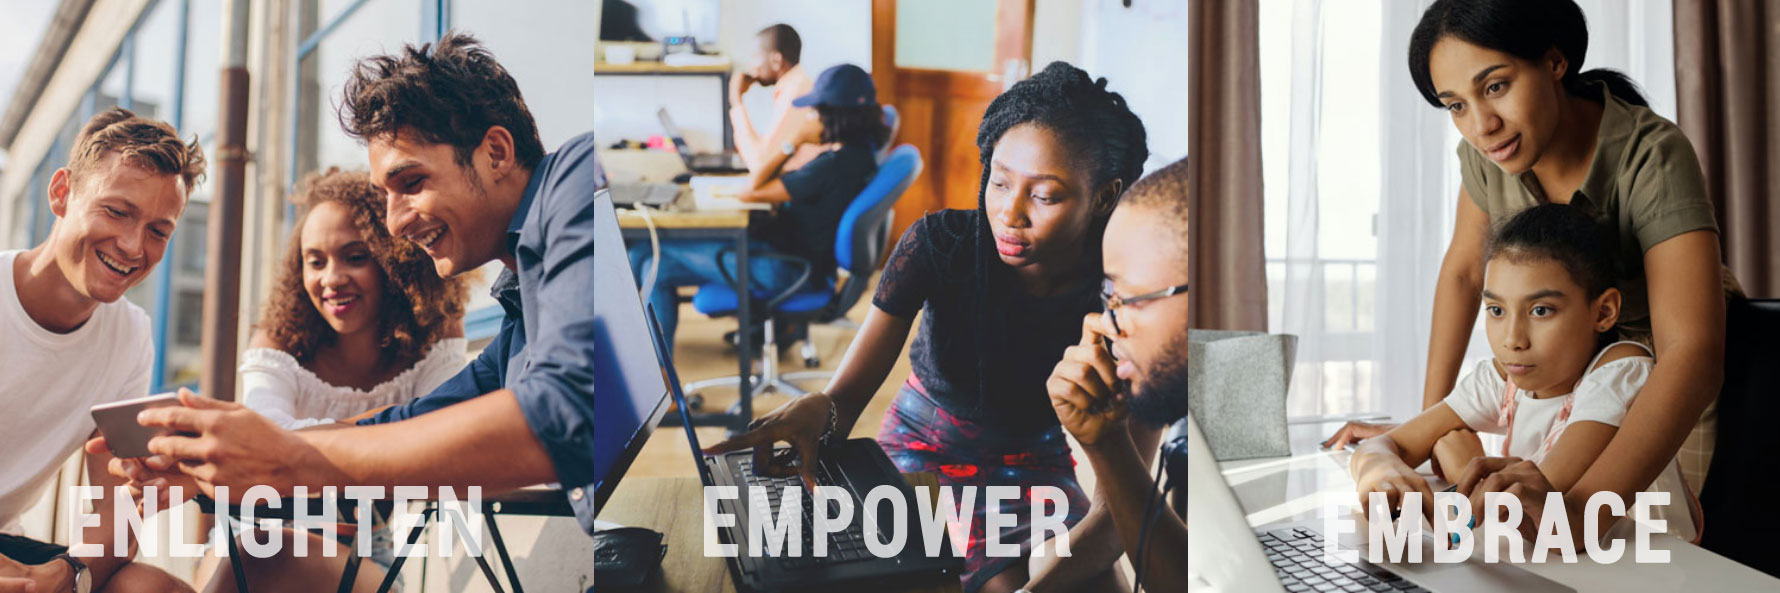 Enlighten, empower, embrace, these are the three main things Tech With Heart Foundation represents